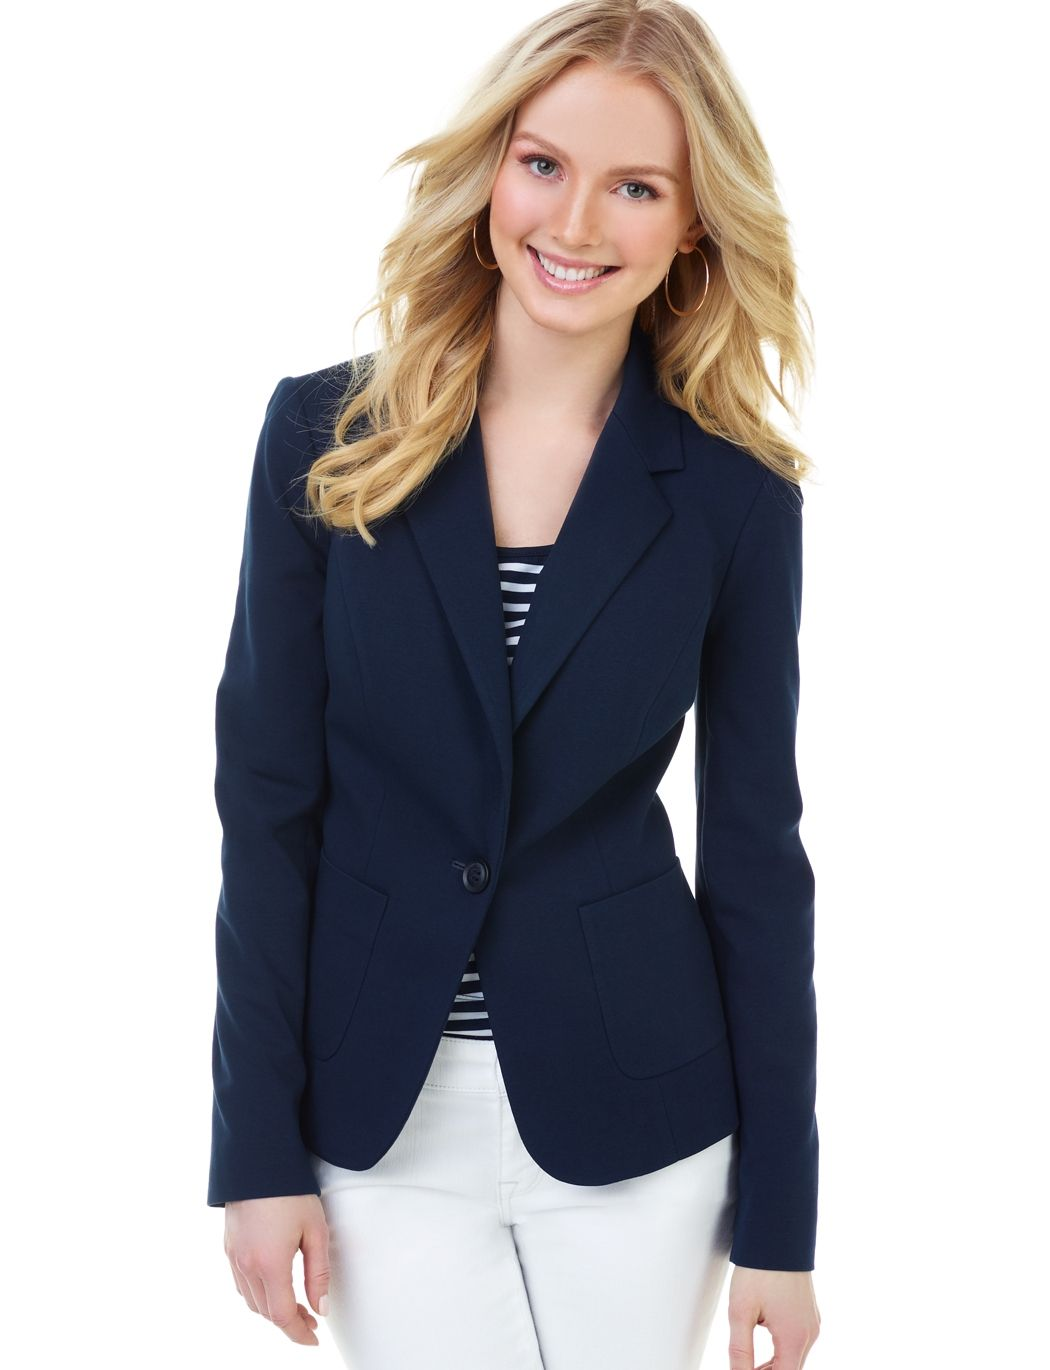 Find great deals on eBay for womens navy blue blazer. Shop with confidence.